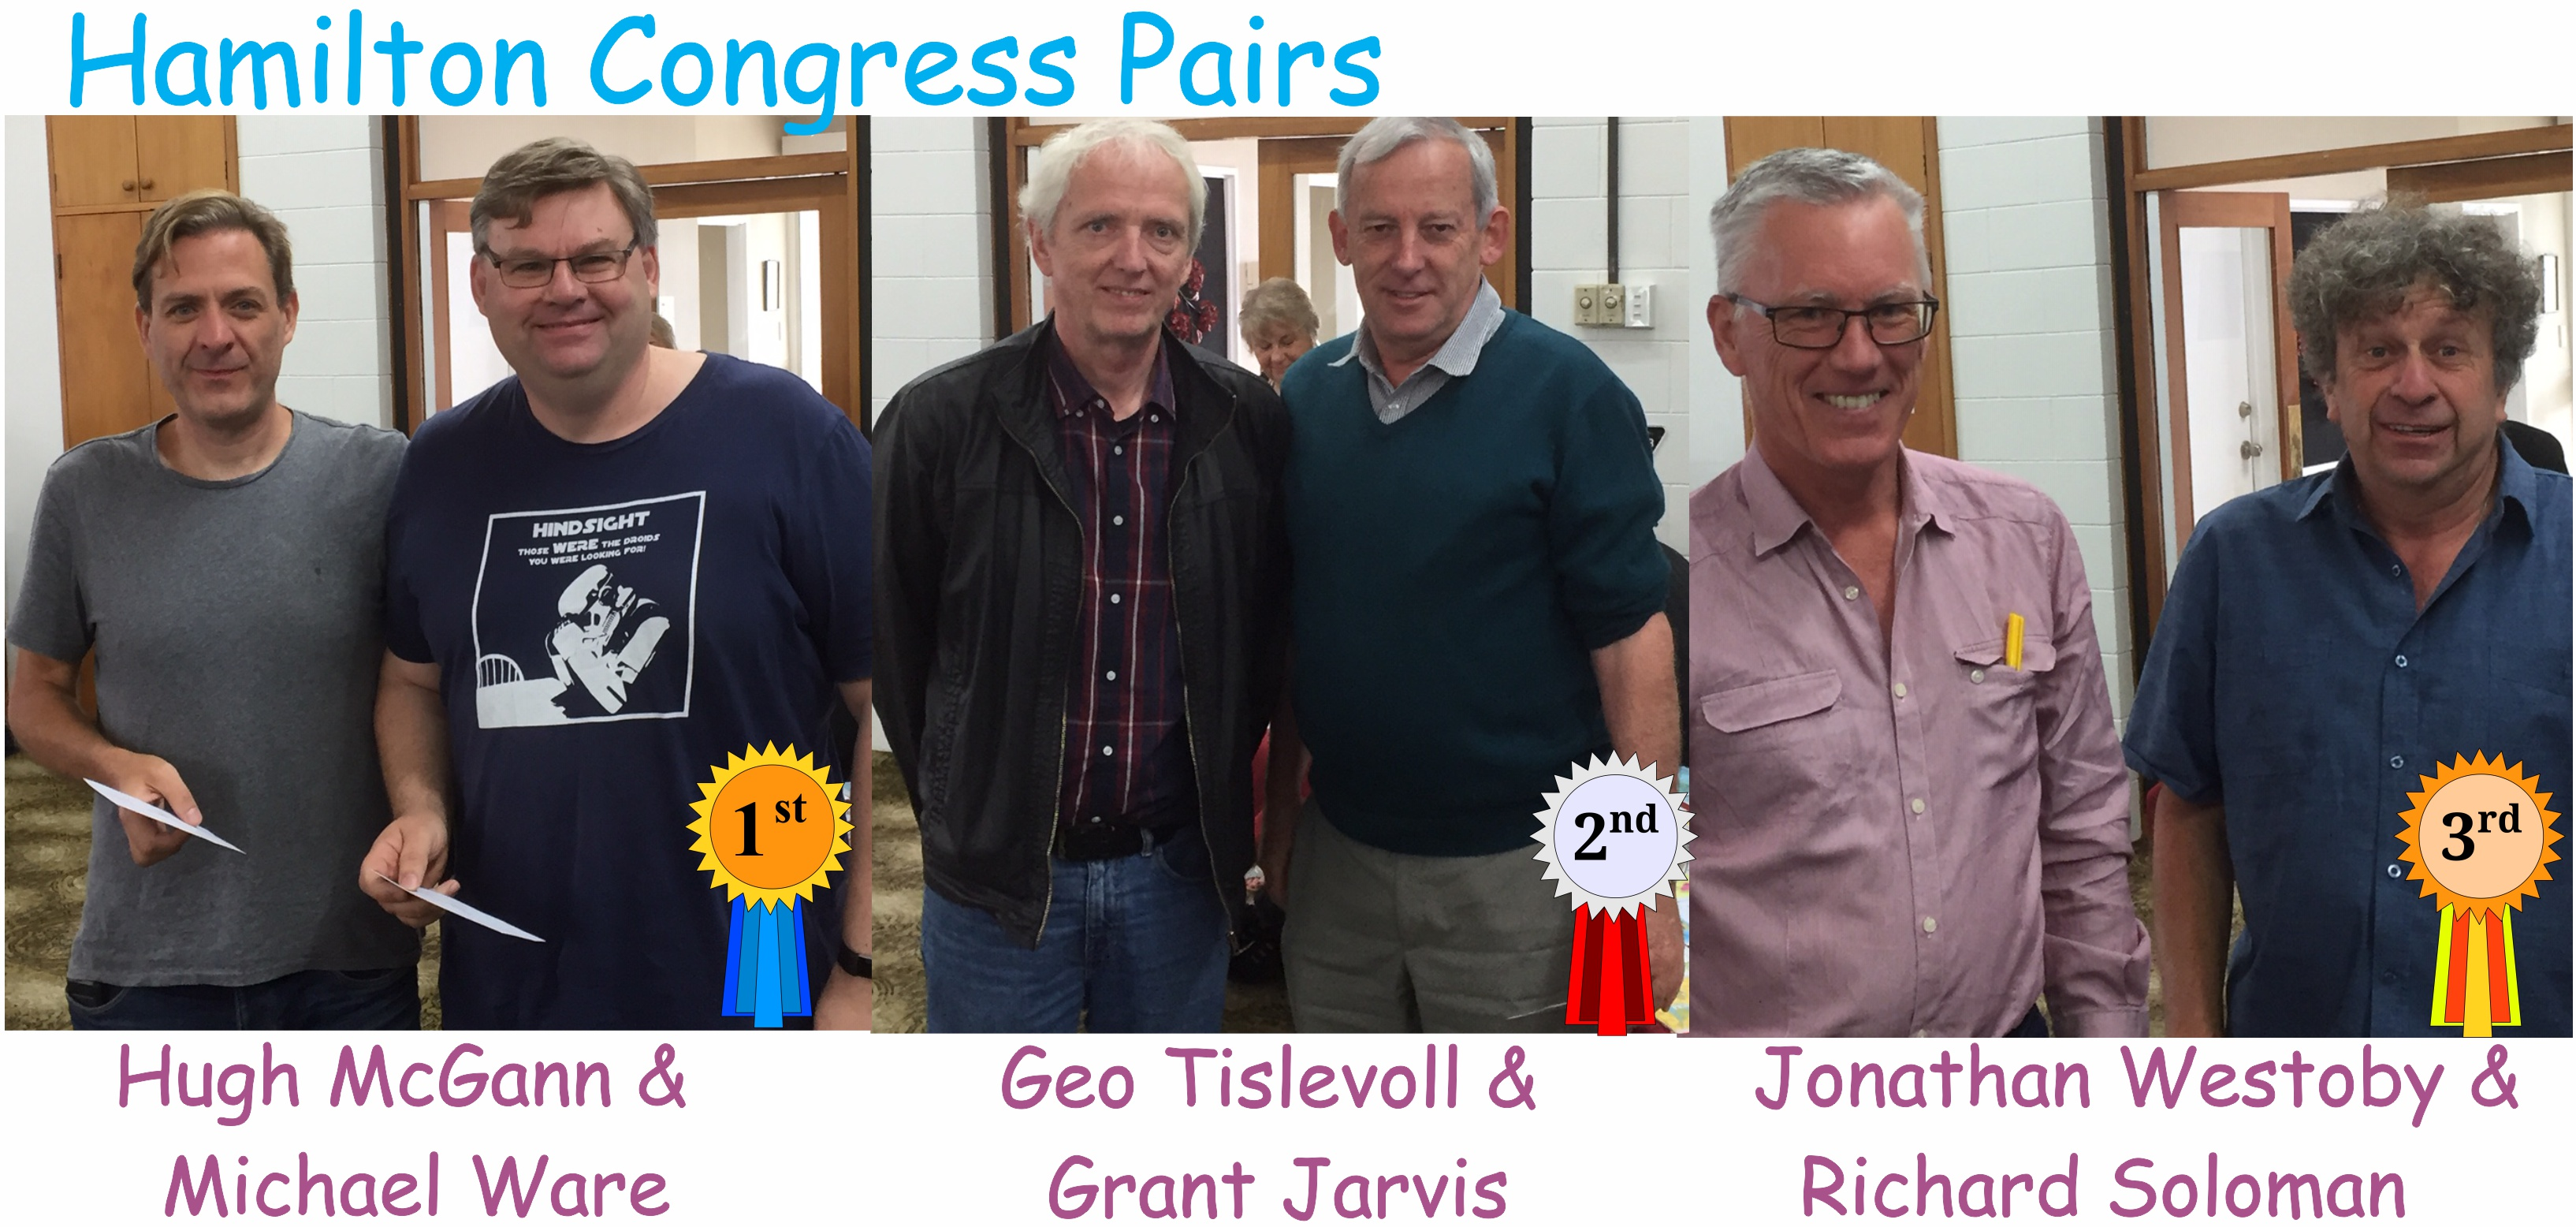 2018 Hamilton Congress Pairs Winners